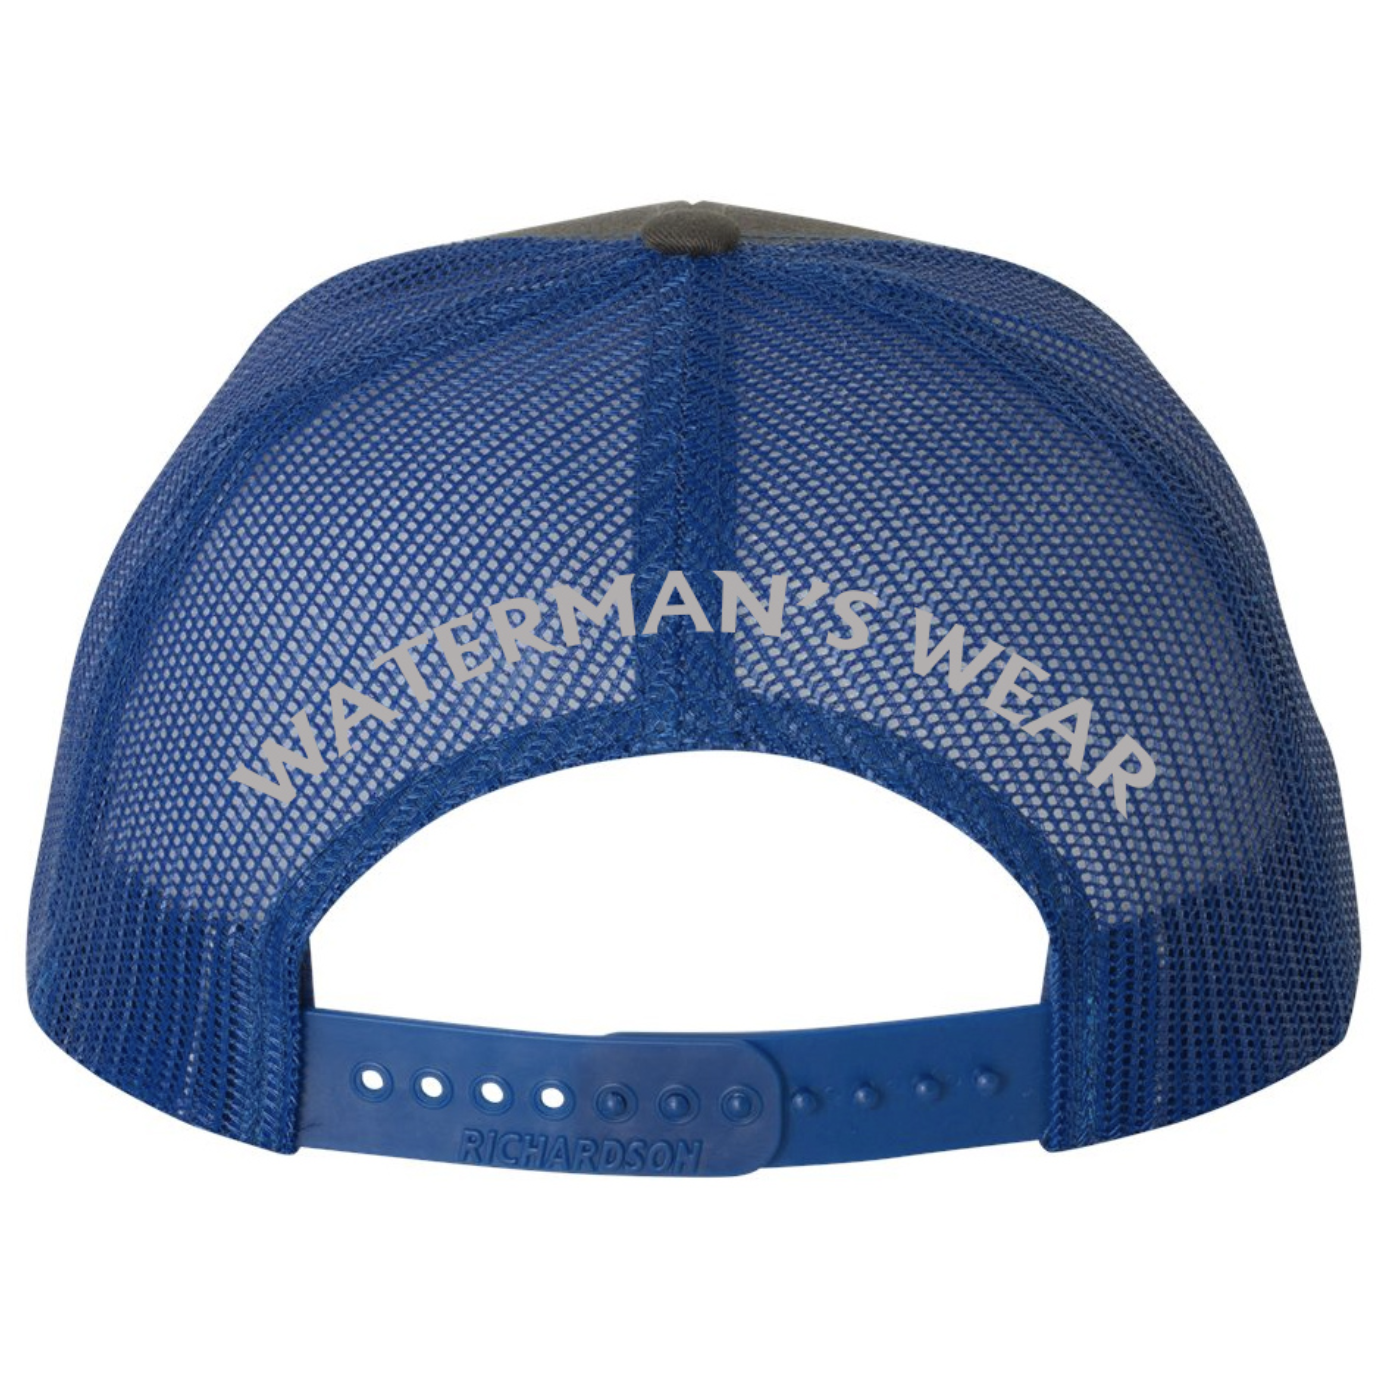 Waterman's Wear Trident Logo Dual Color Adjustable Trucker Hat - Charcoal/Royal Blue